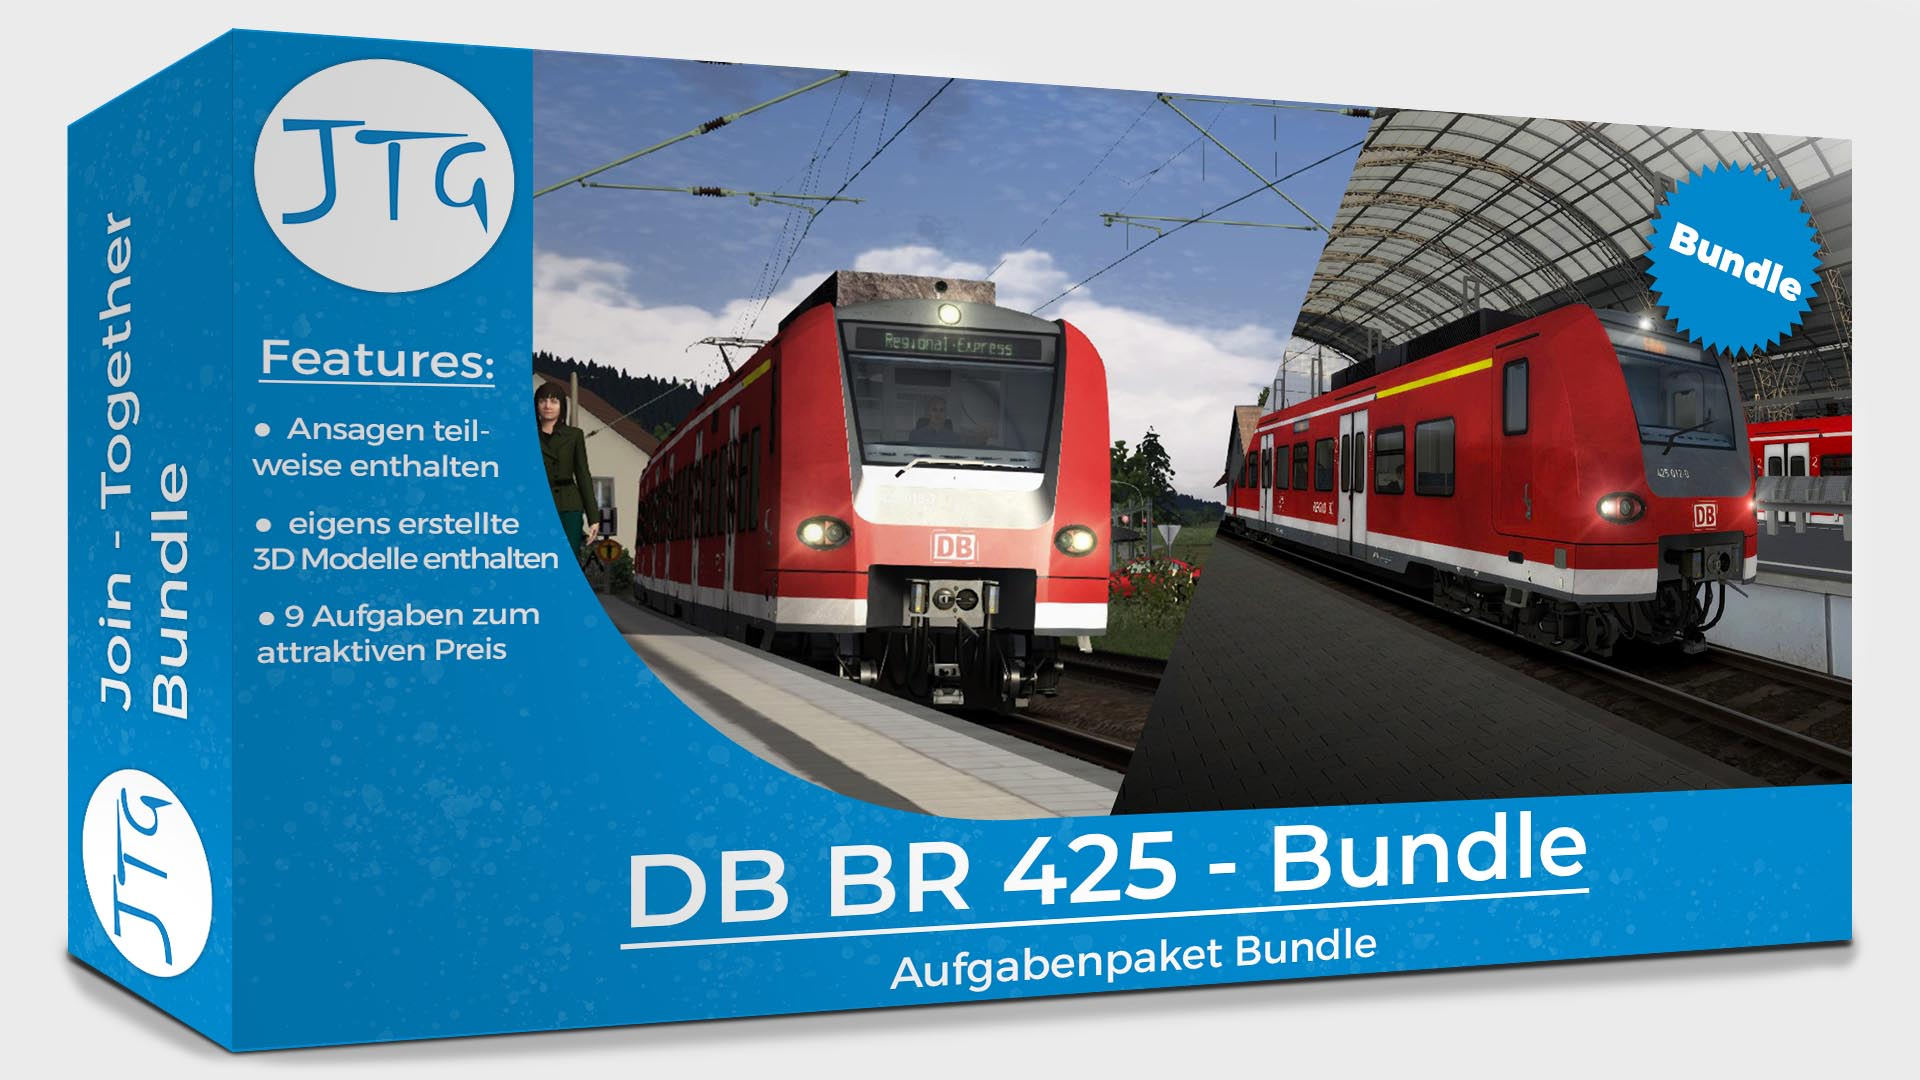 JTG Bundle: On Tour with the BR425